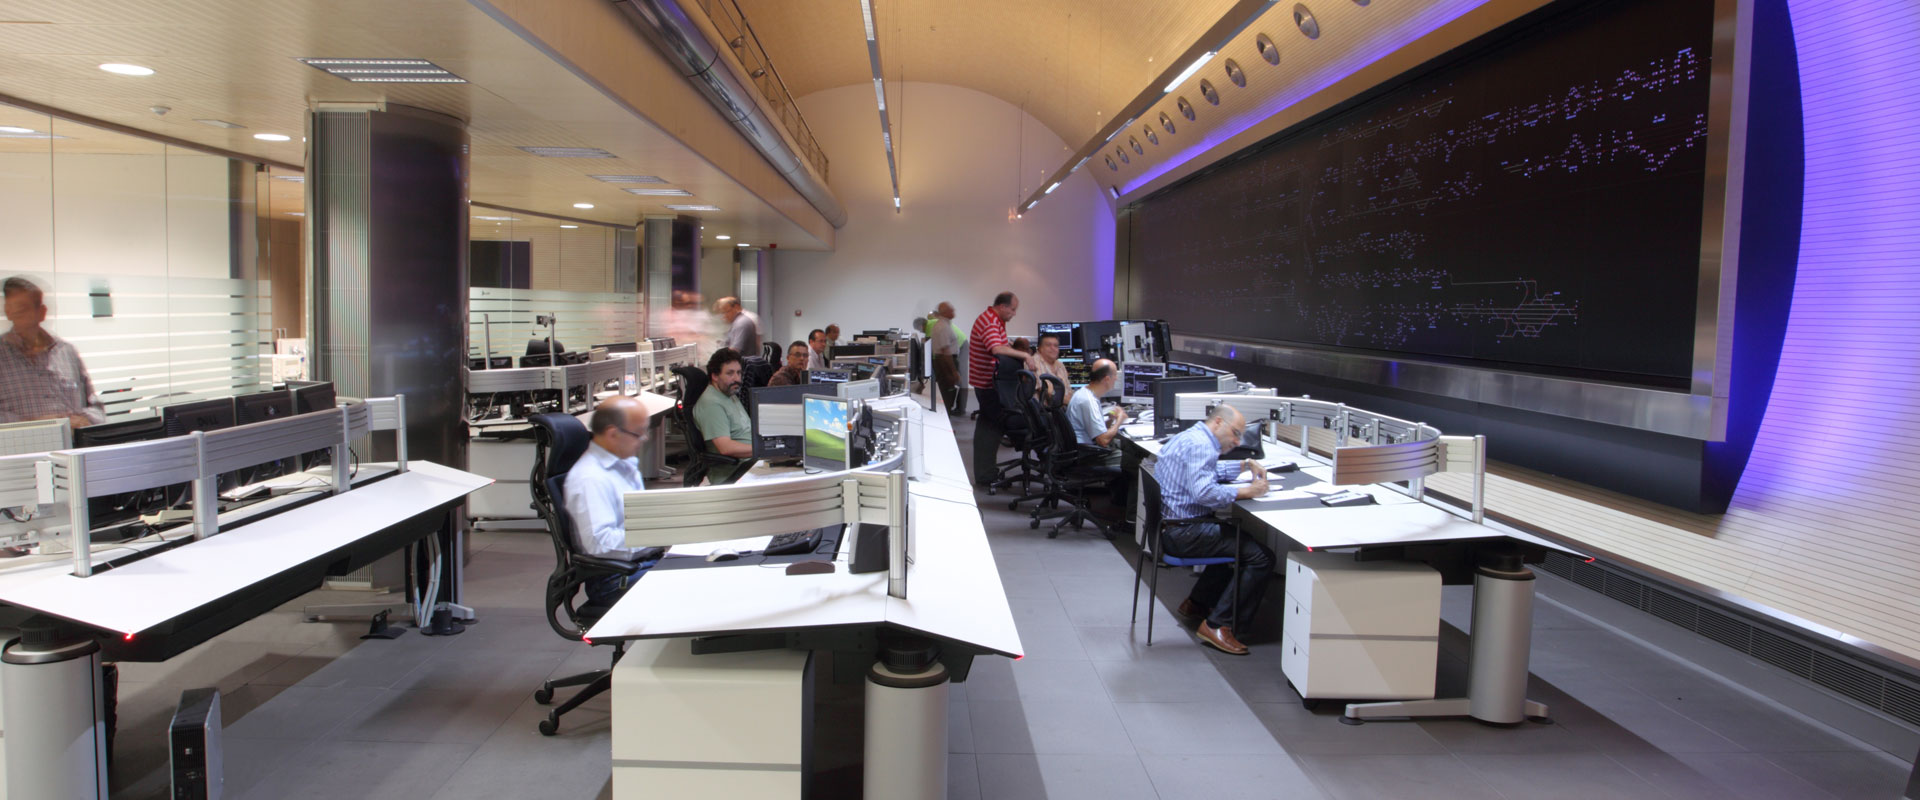 command and control room